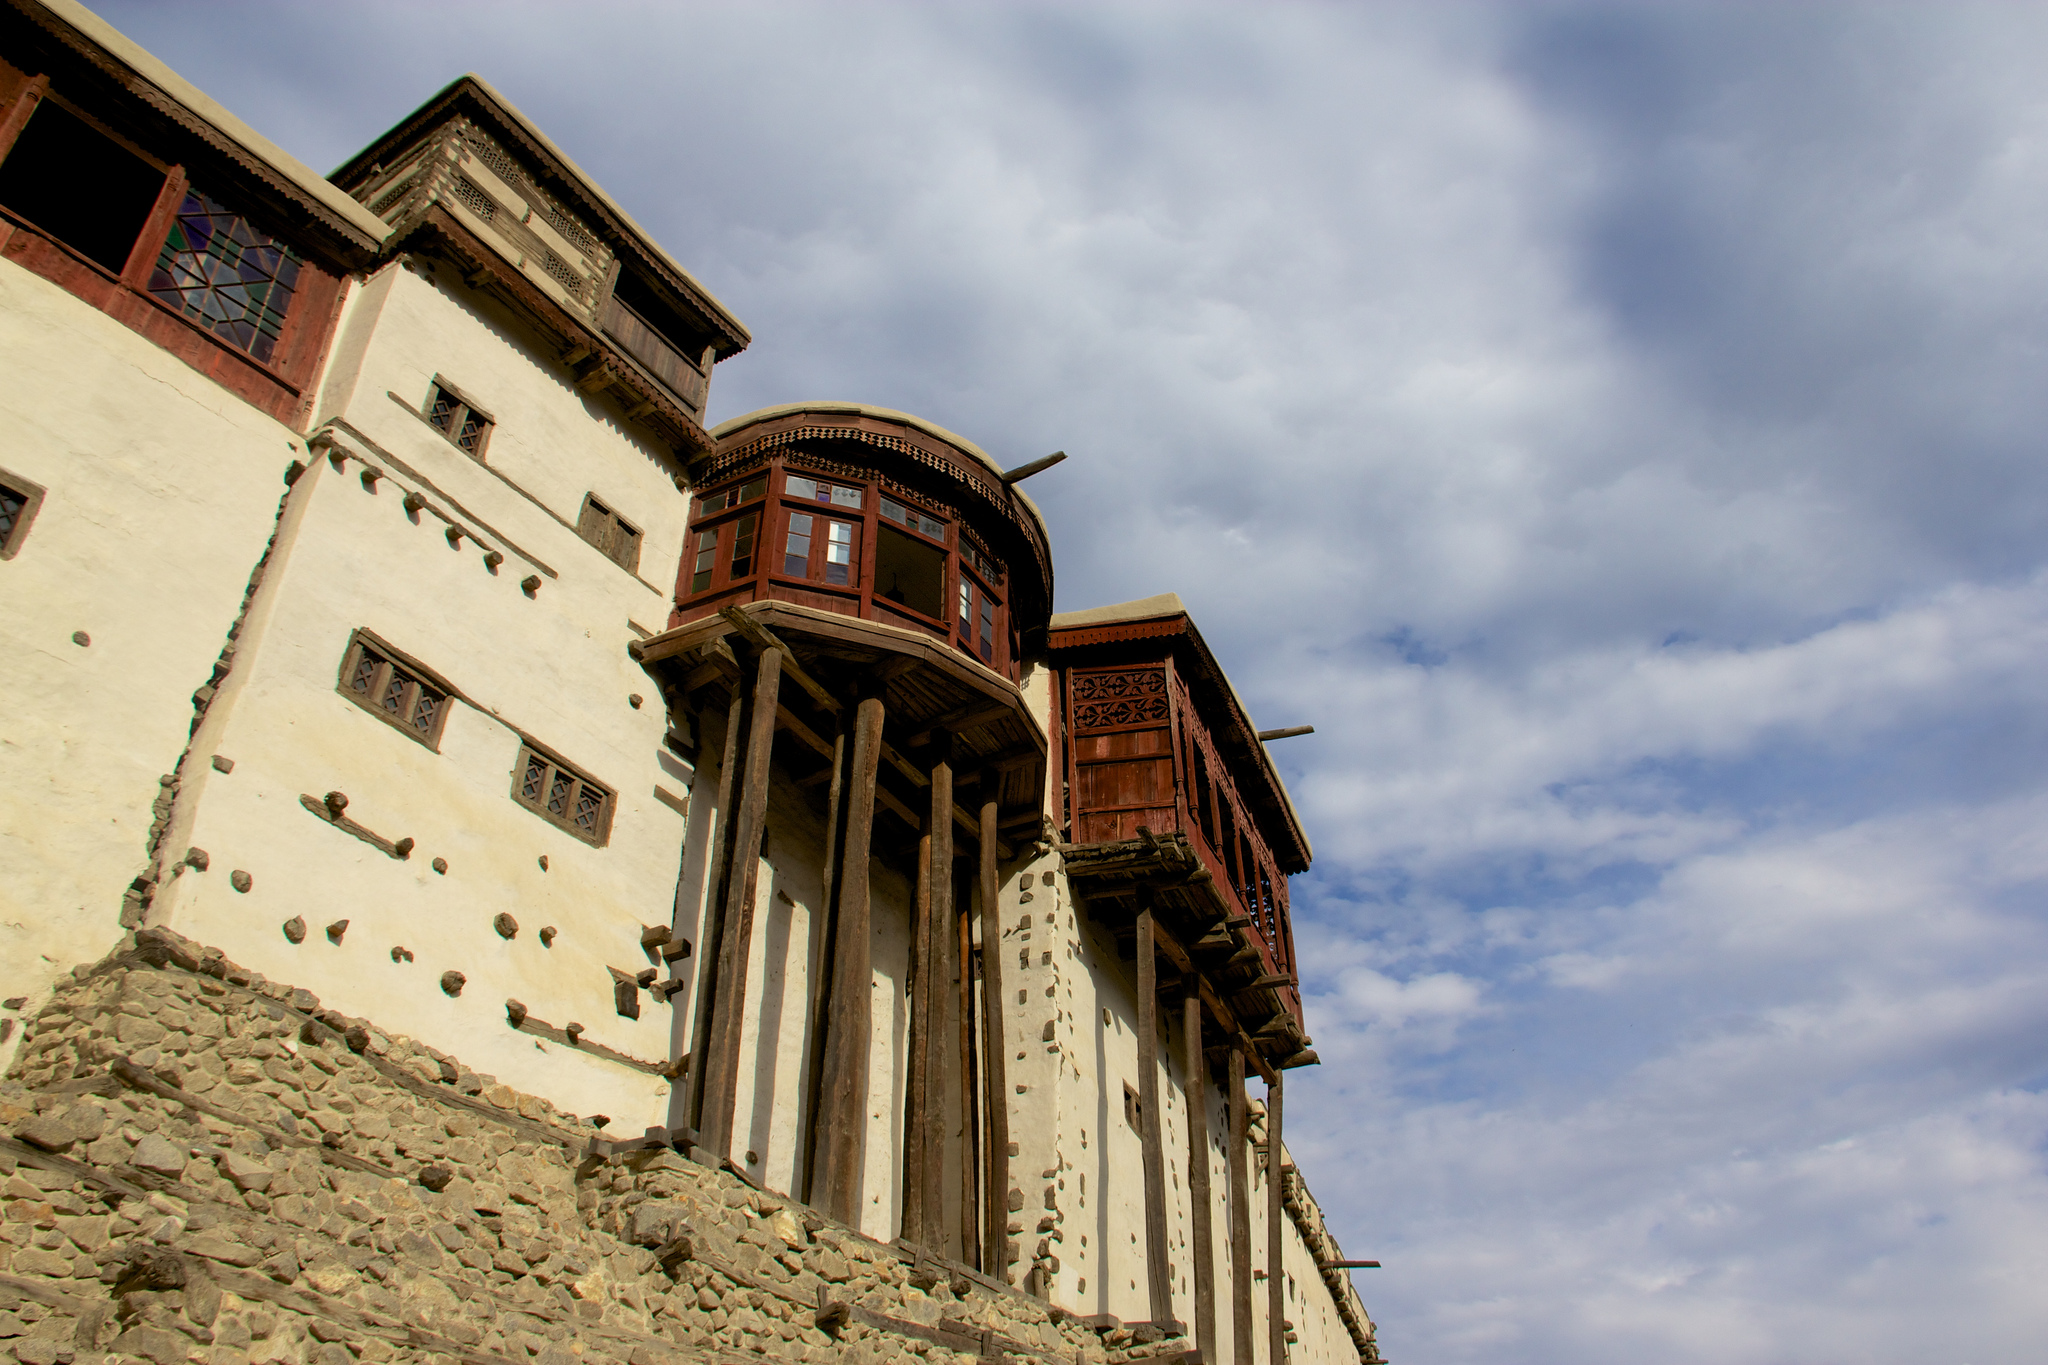 The Baltit Fort, as the name suggests, has strong links with the Balti architecture. It was constructed by Balti artisans who traveled to Hunza along with a Balti bride of the then ruler of Hunza